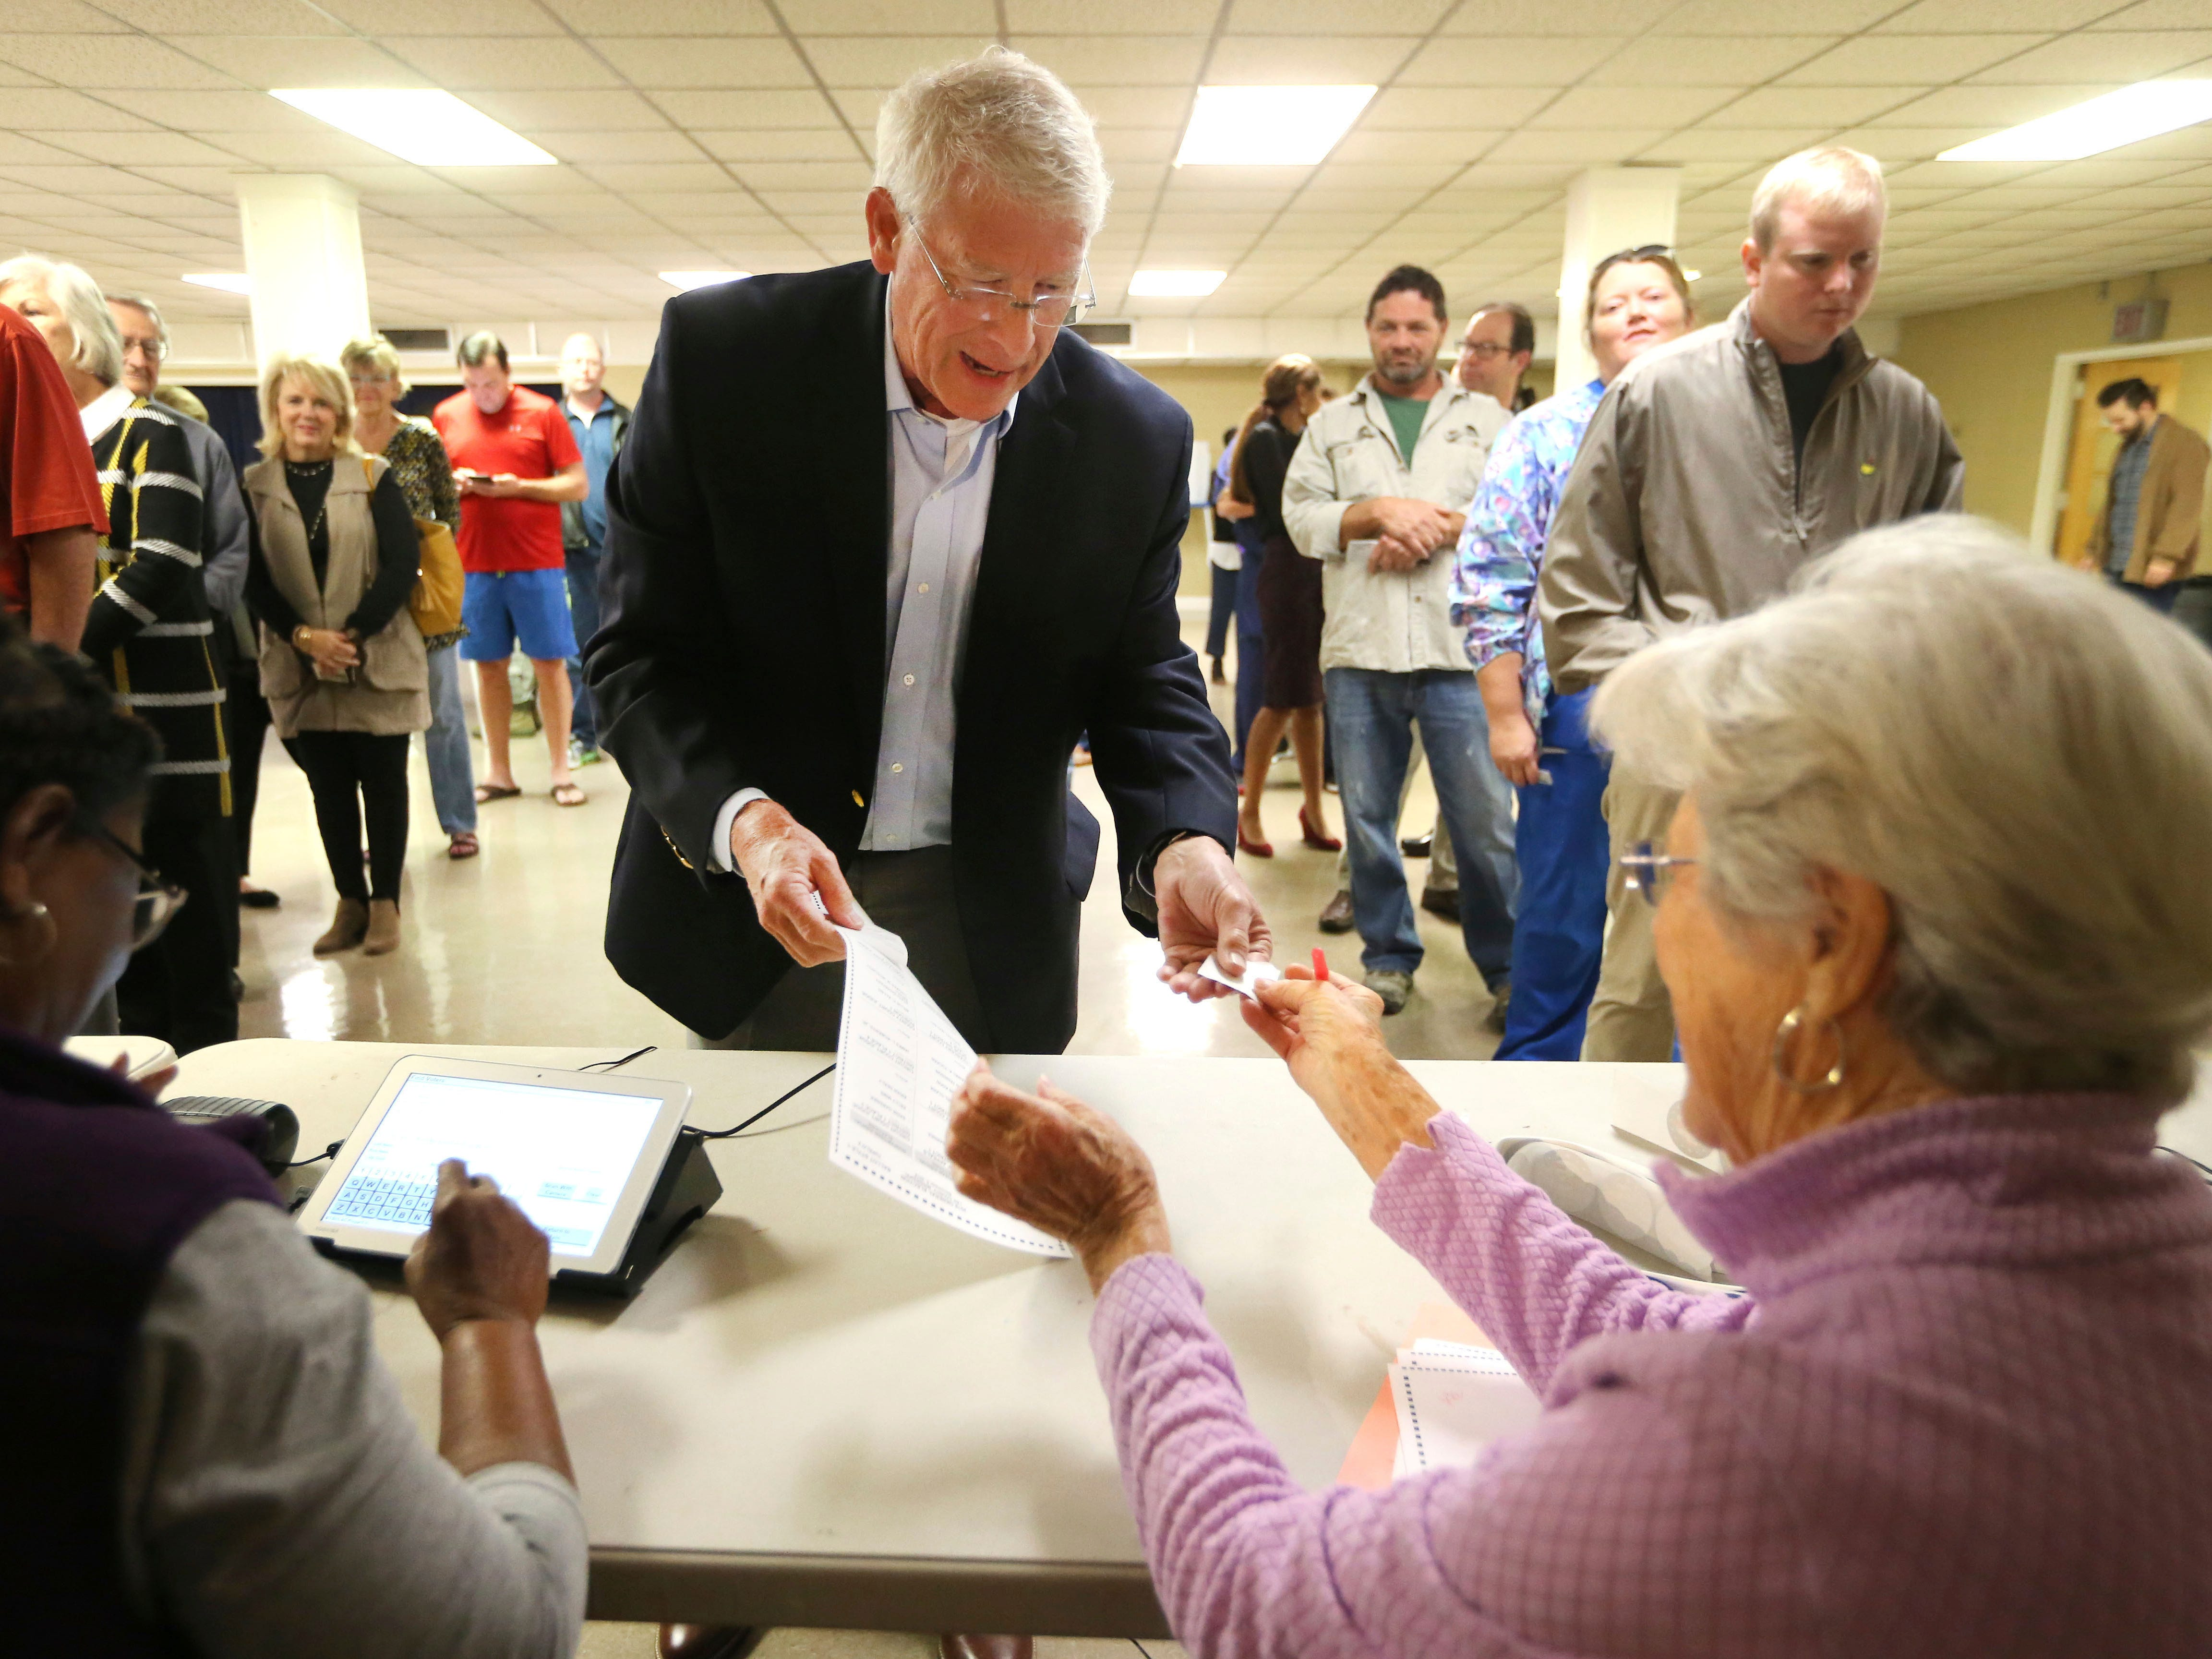 United States Sen. Roger Wicker, R-Miss., center, receives his ballot after showing his voter I.D. and signing in to vote in the midterm elections Tuesday, Nov. 6, 2018, in Tupelo, Miss. Wicker, who seeks reelection, faces several opponents, including State Rep. David Baria, D-Bay St. Louis.